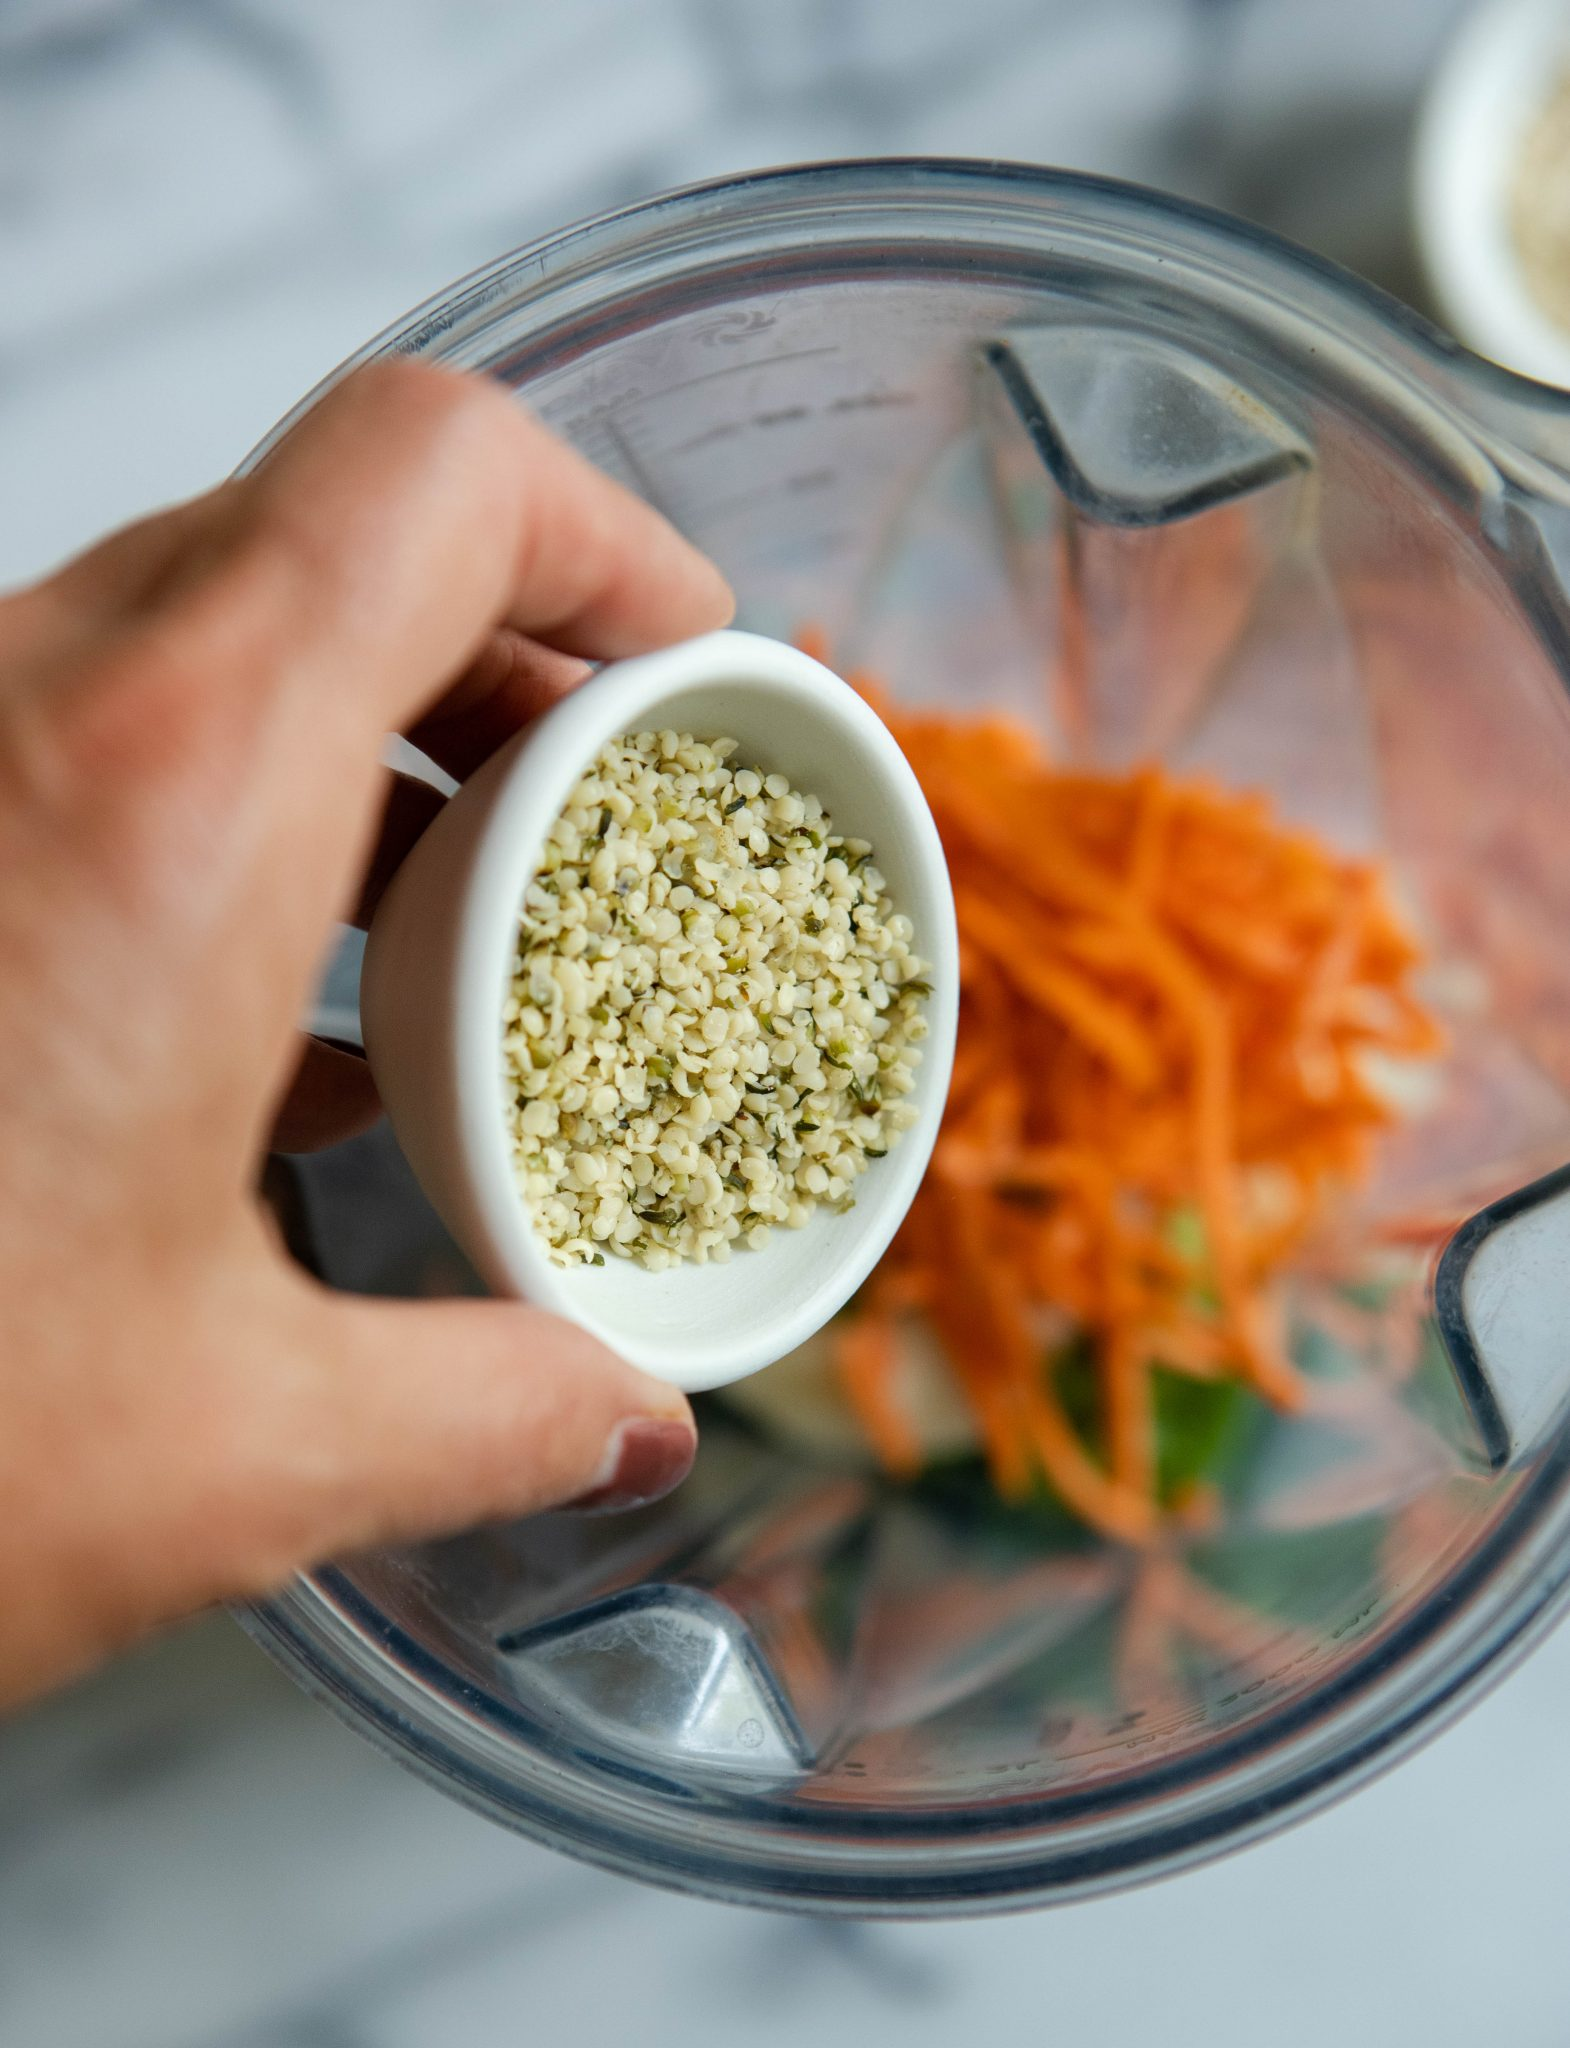 hemp seeds being poured into a blender